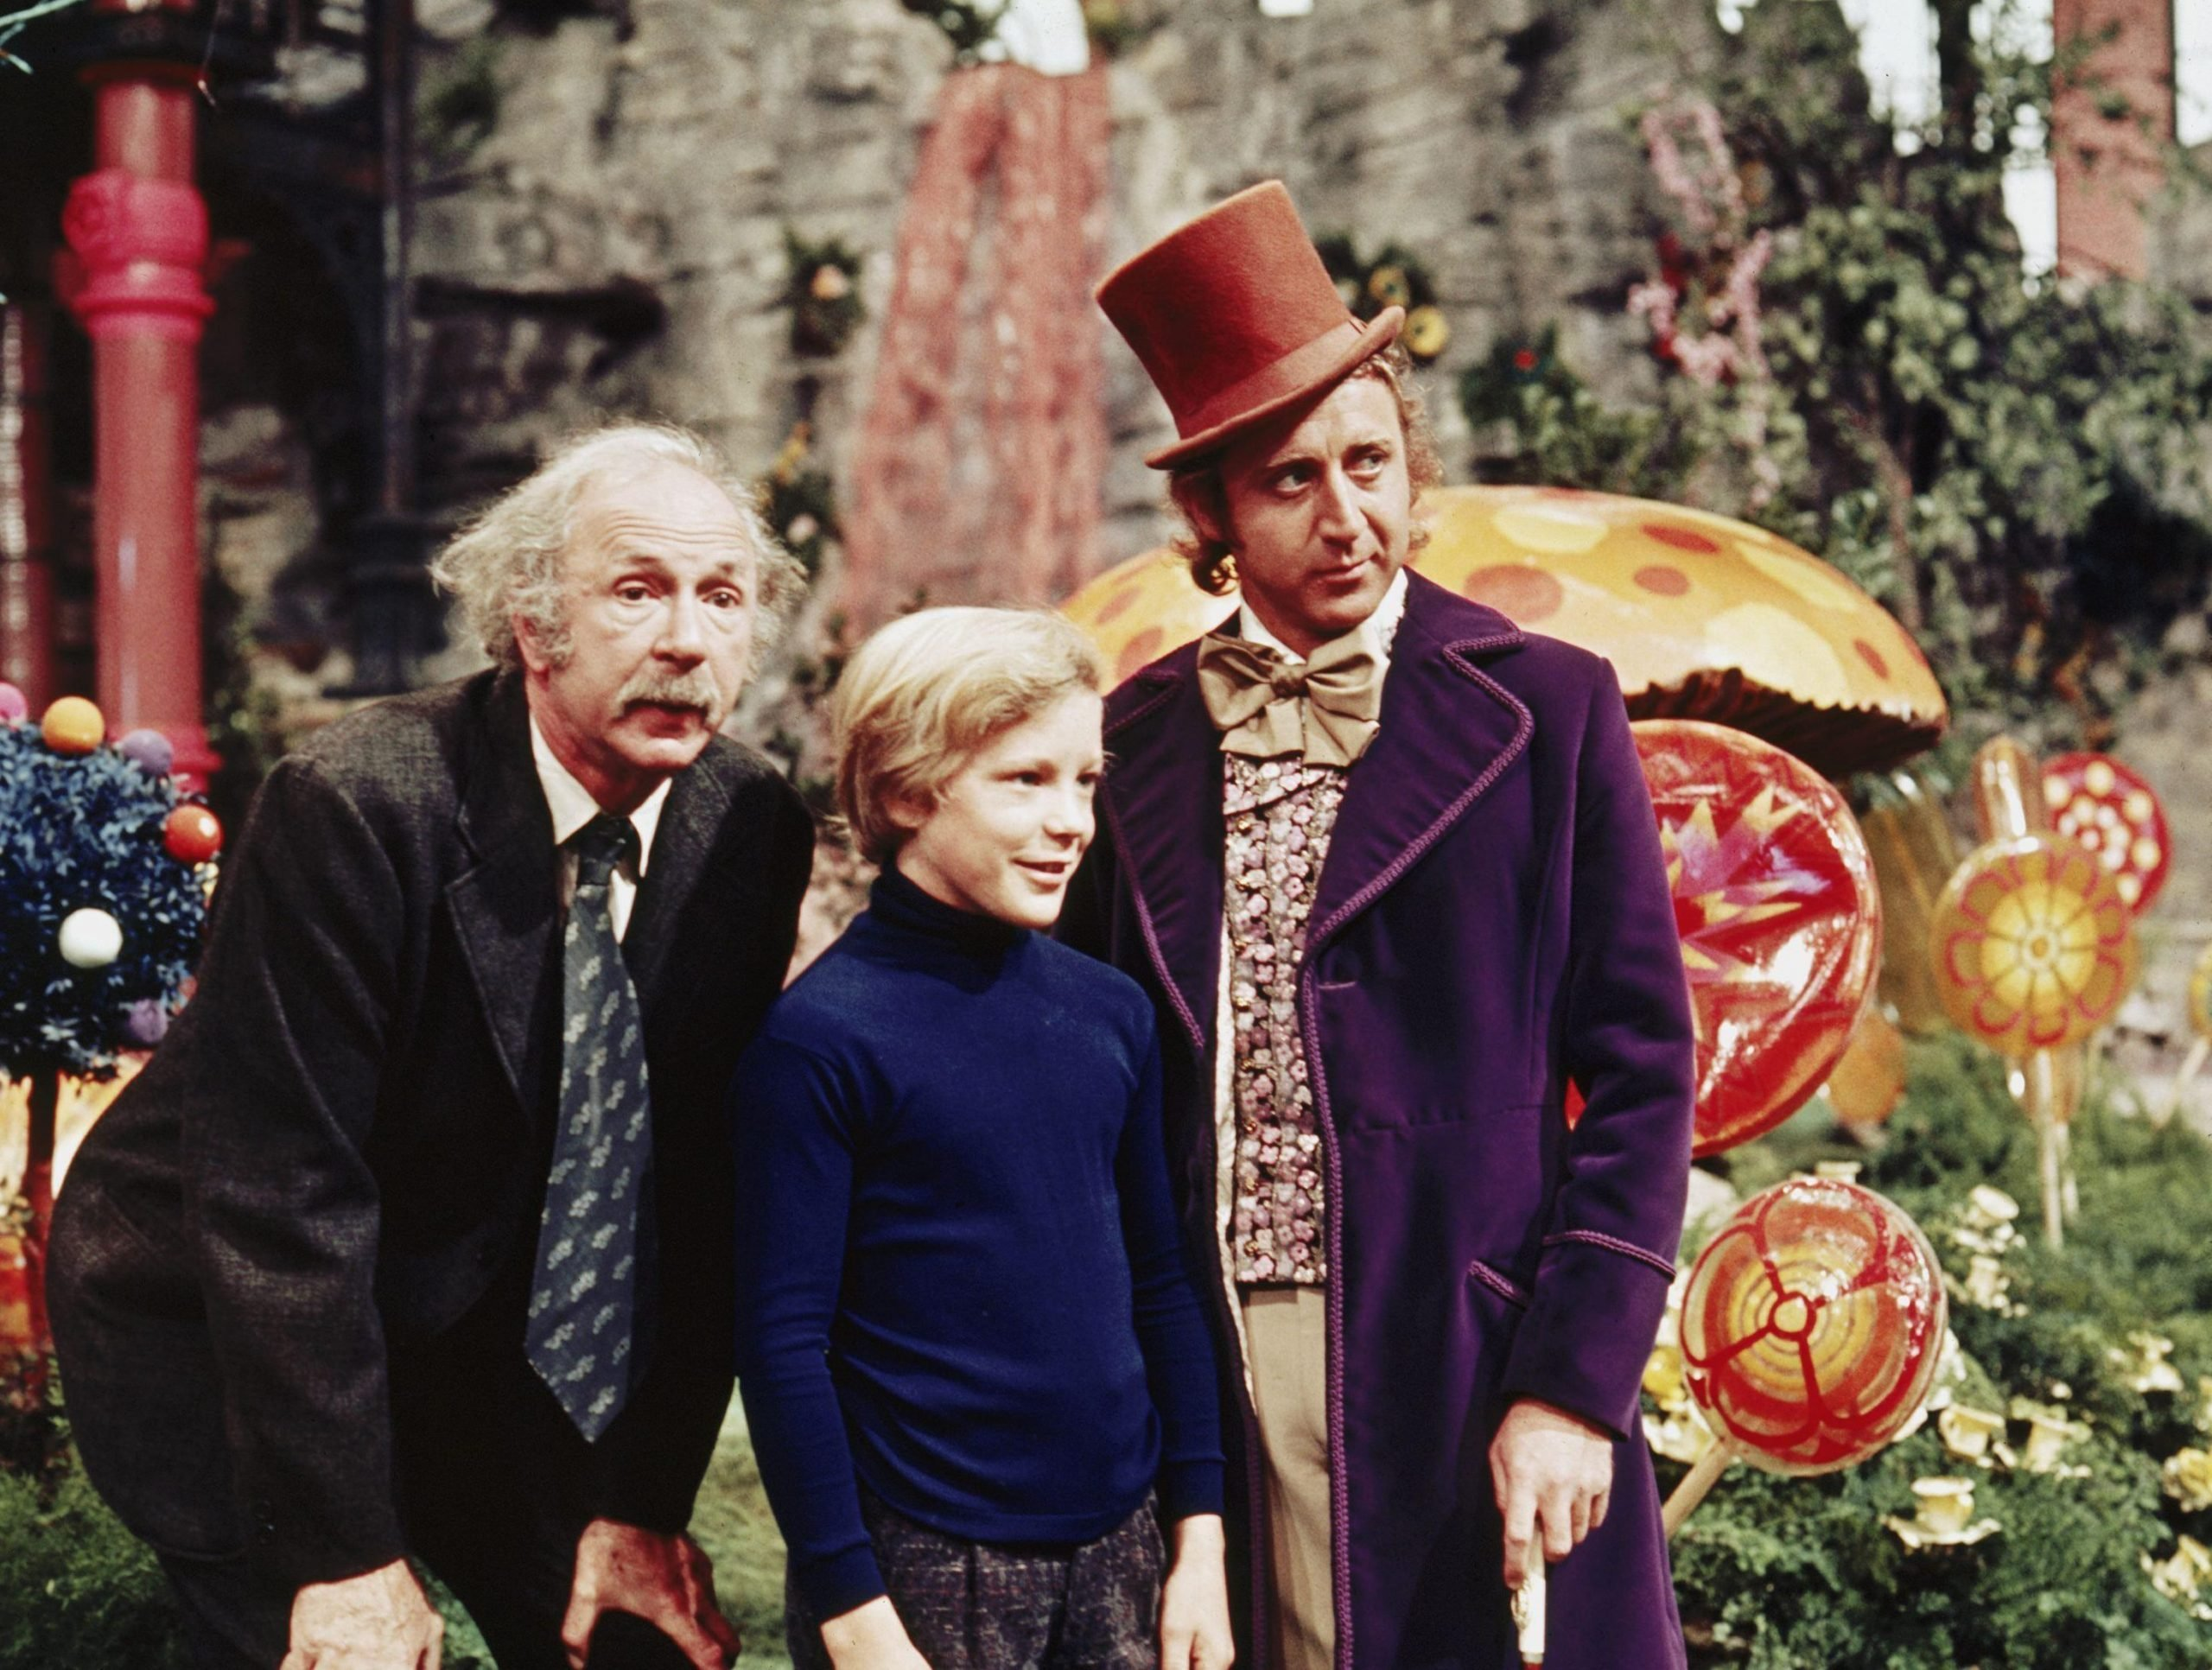 nintchdbpict000342686319 e1522666212134 scaled 28 Things You Probably Never Knew About Willy Wonka And The Chocolate Factory